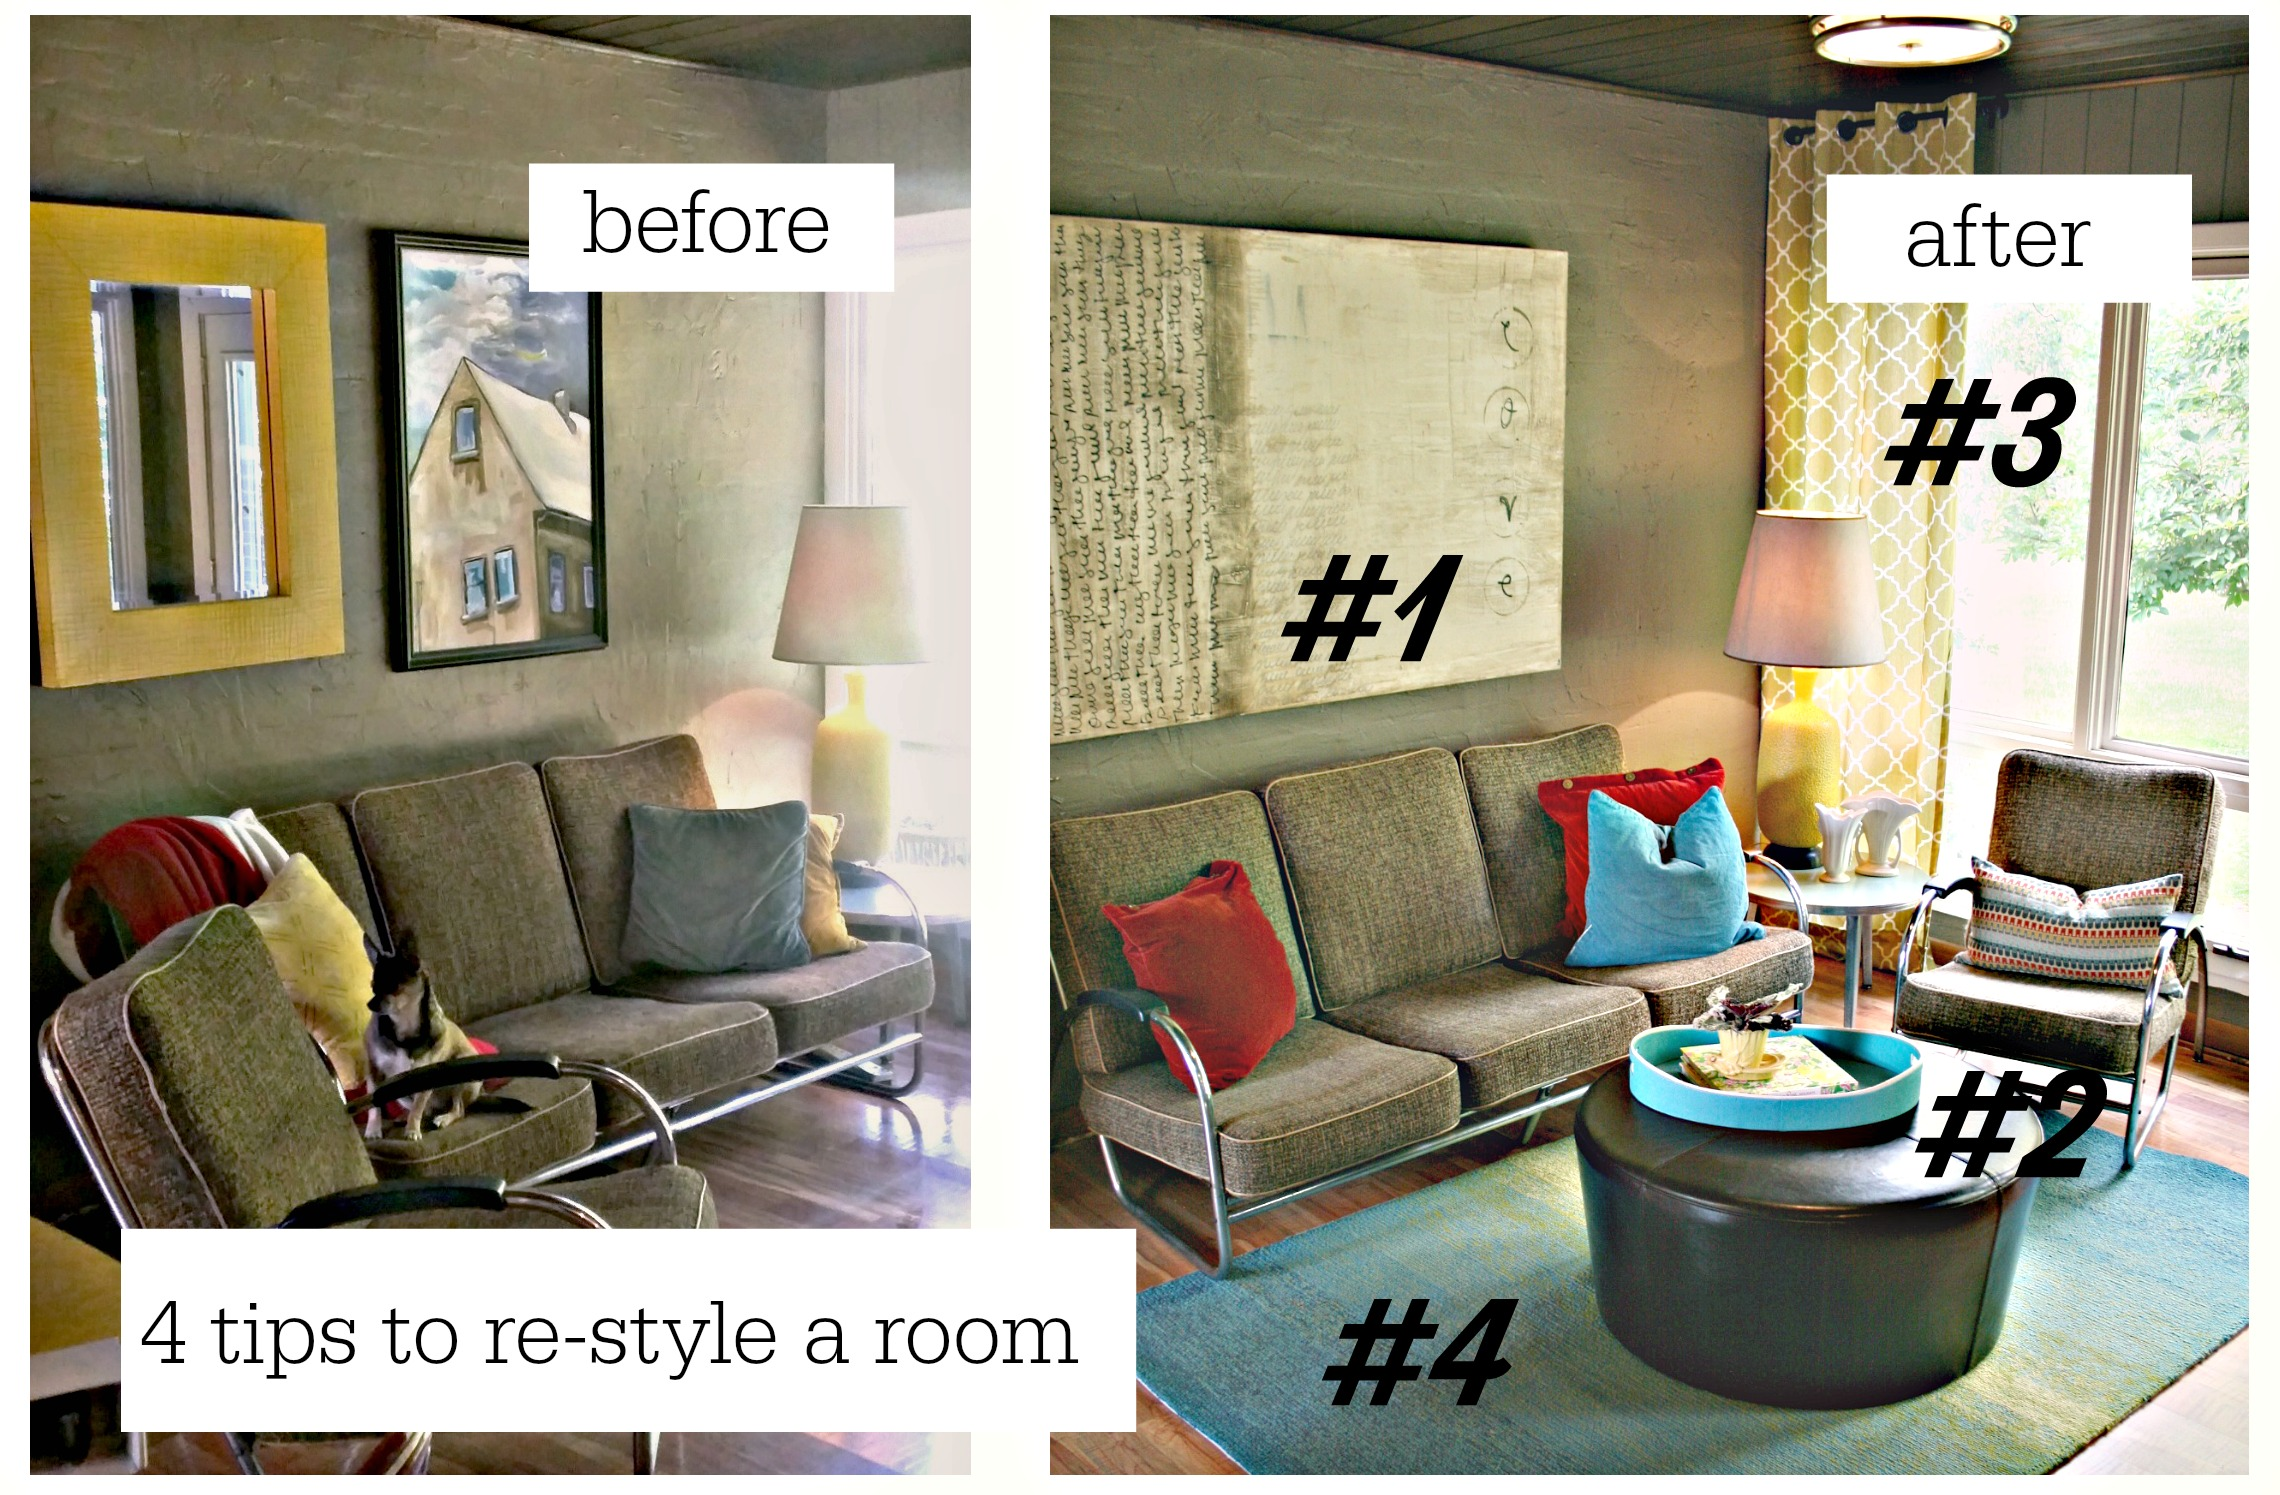 restyle_4tips